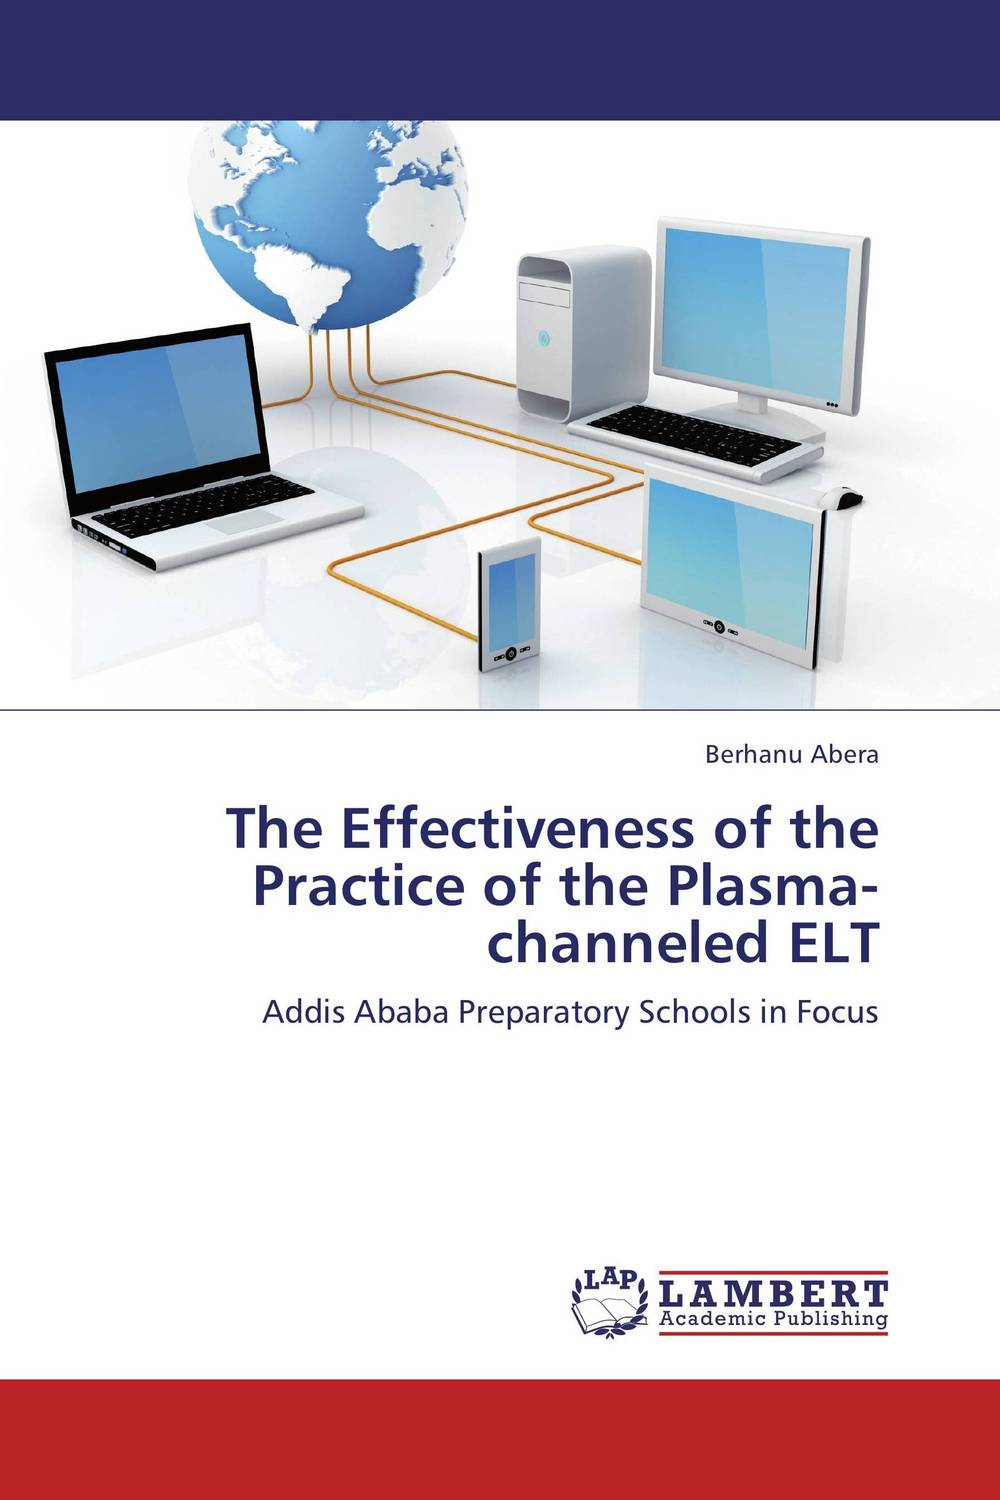 The Effectiveness of the Practice of the Plasma-channeled ELT the role of evaluation as a mechanism for advancing principal practice